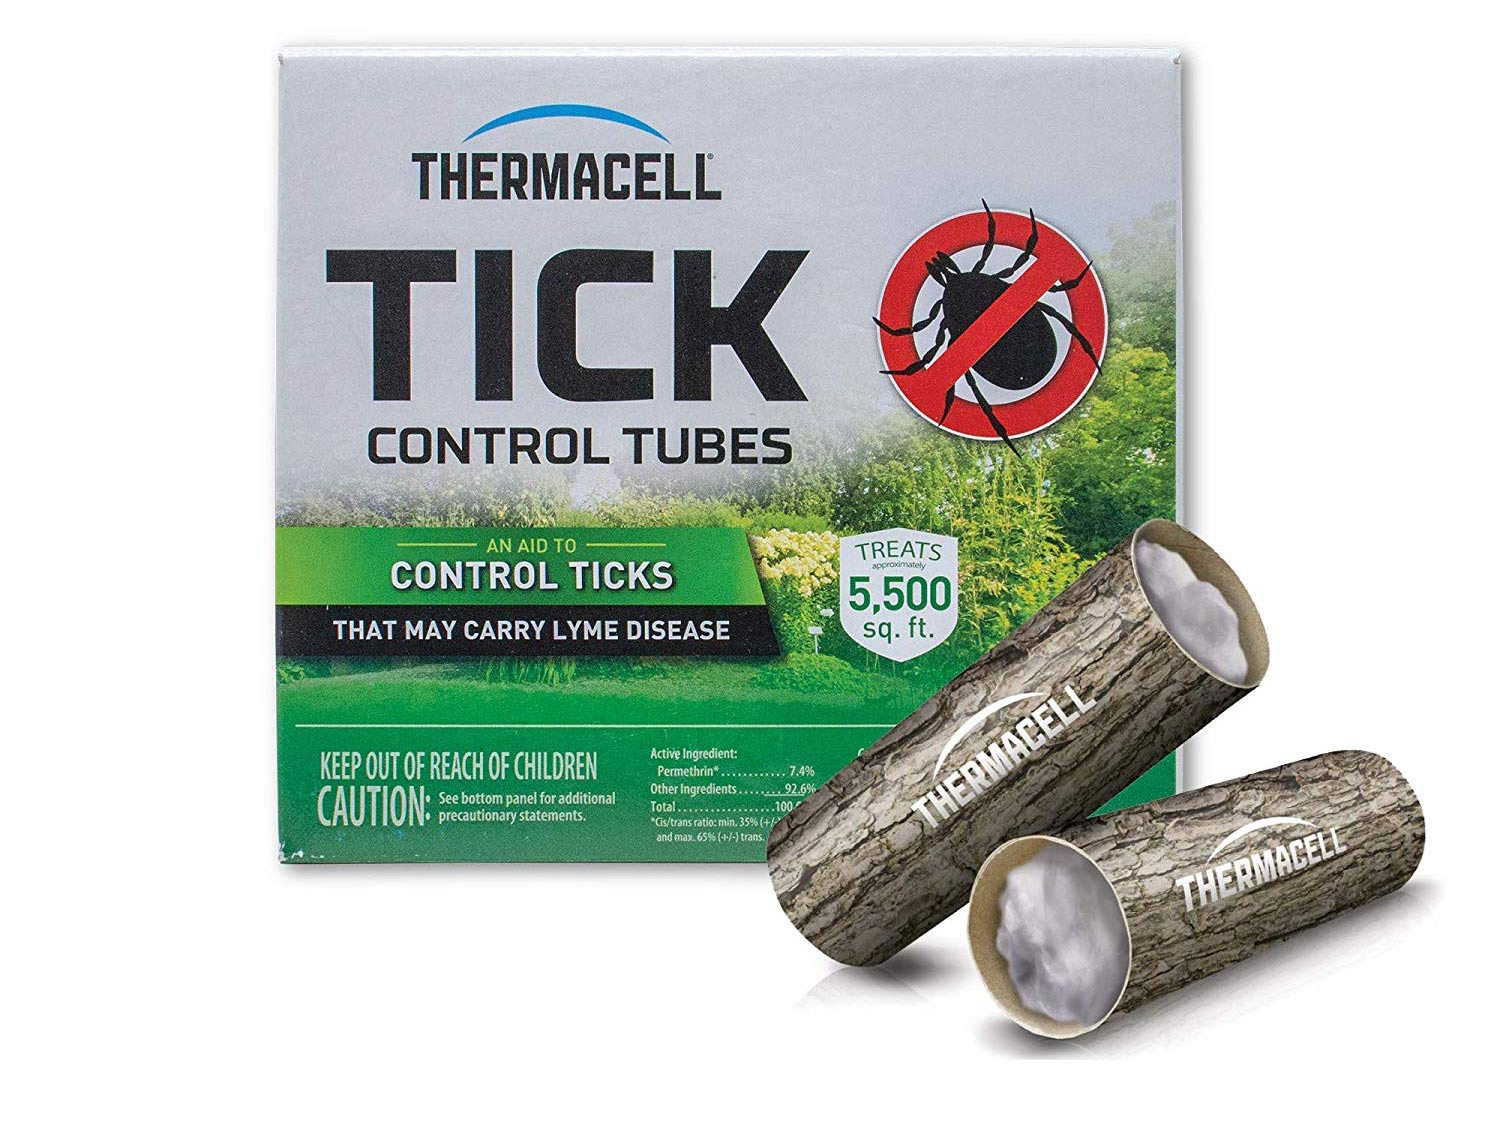 Thermacell Tick Tubes